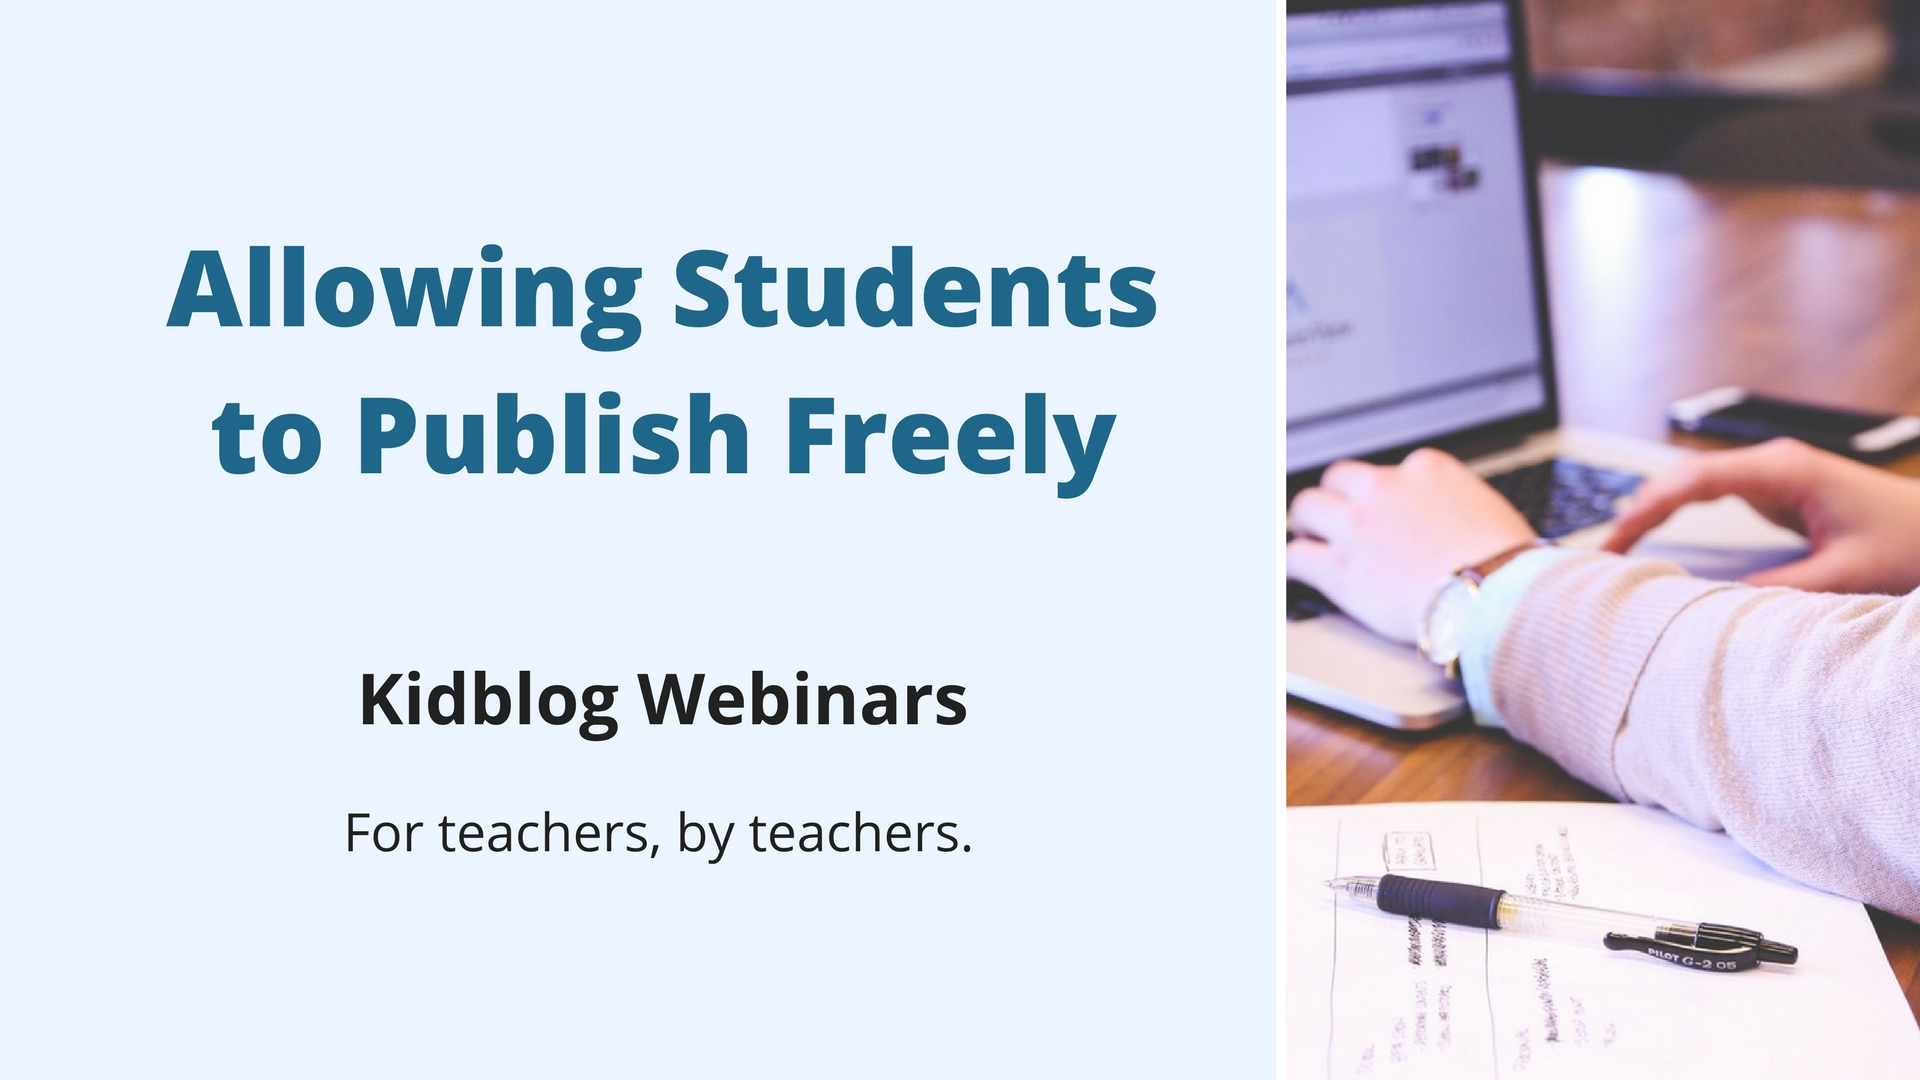 Webinar: Allowing Students to Publish Freely